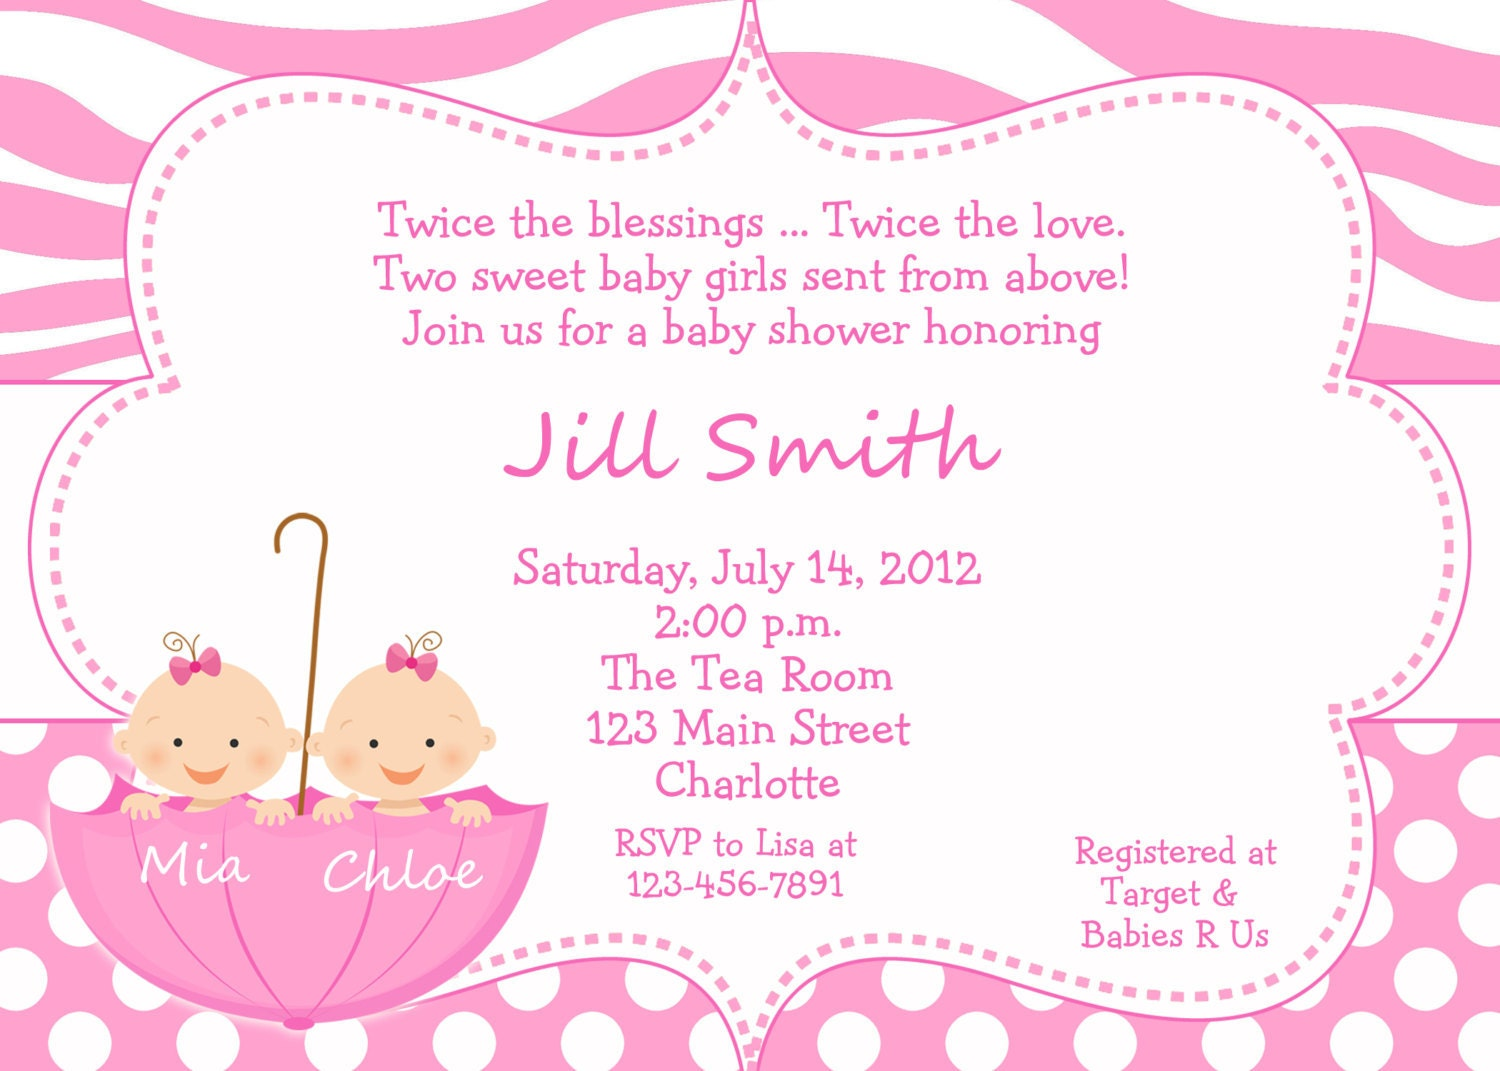 Co-Ed Baby Shower Invite with adorable invitation ideas